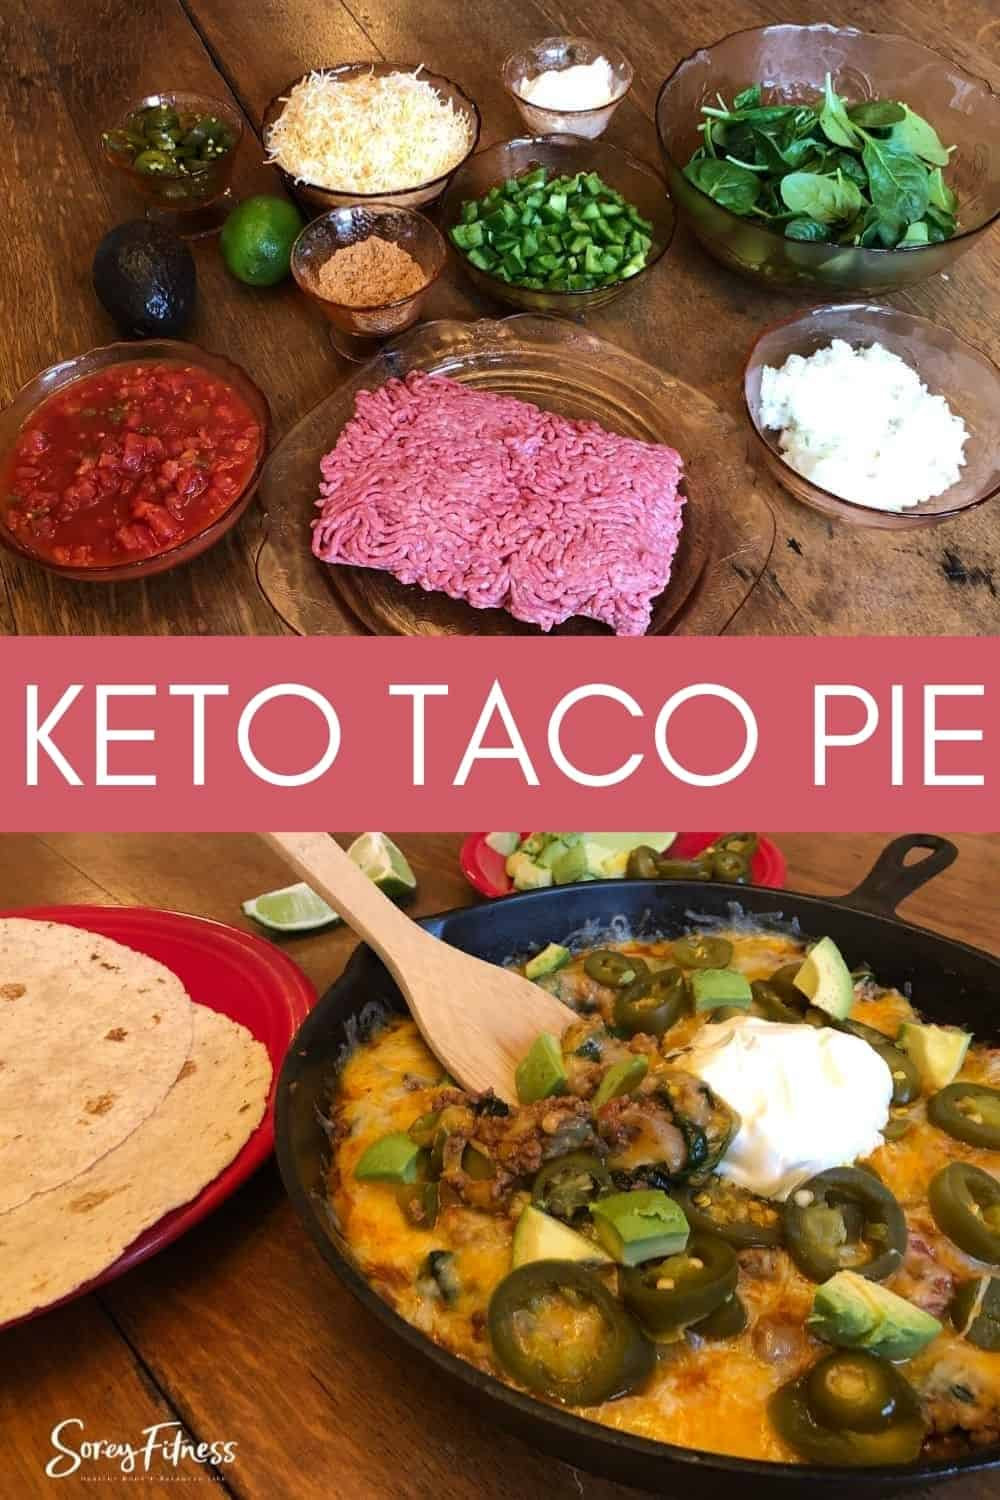 collage of the keto taco casserole ingredients and finished meal